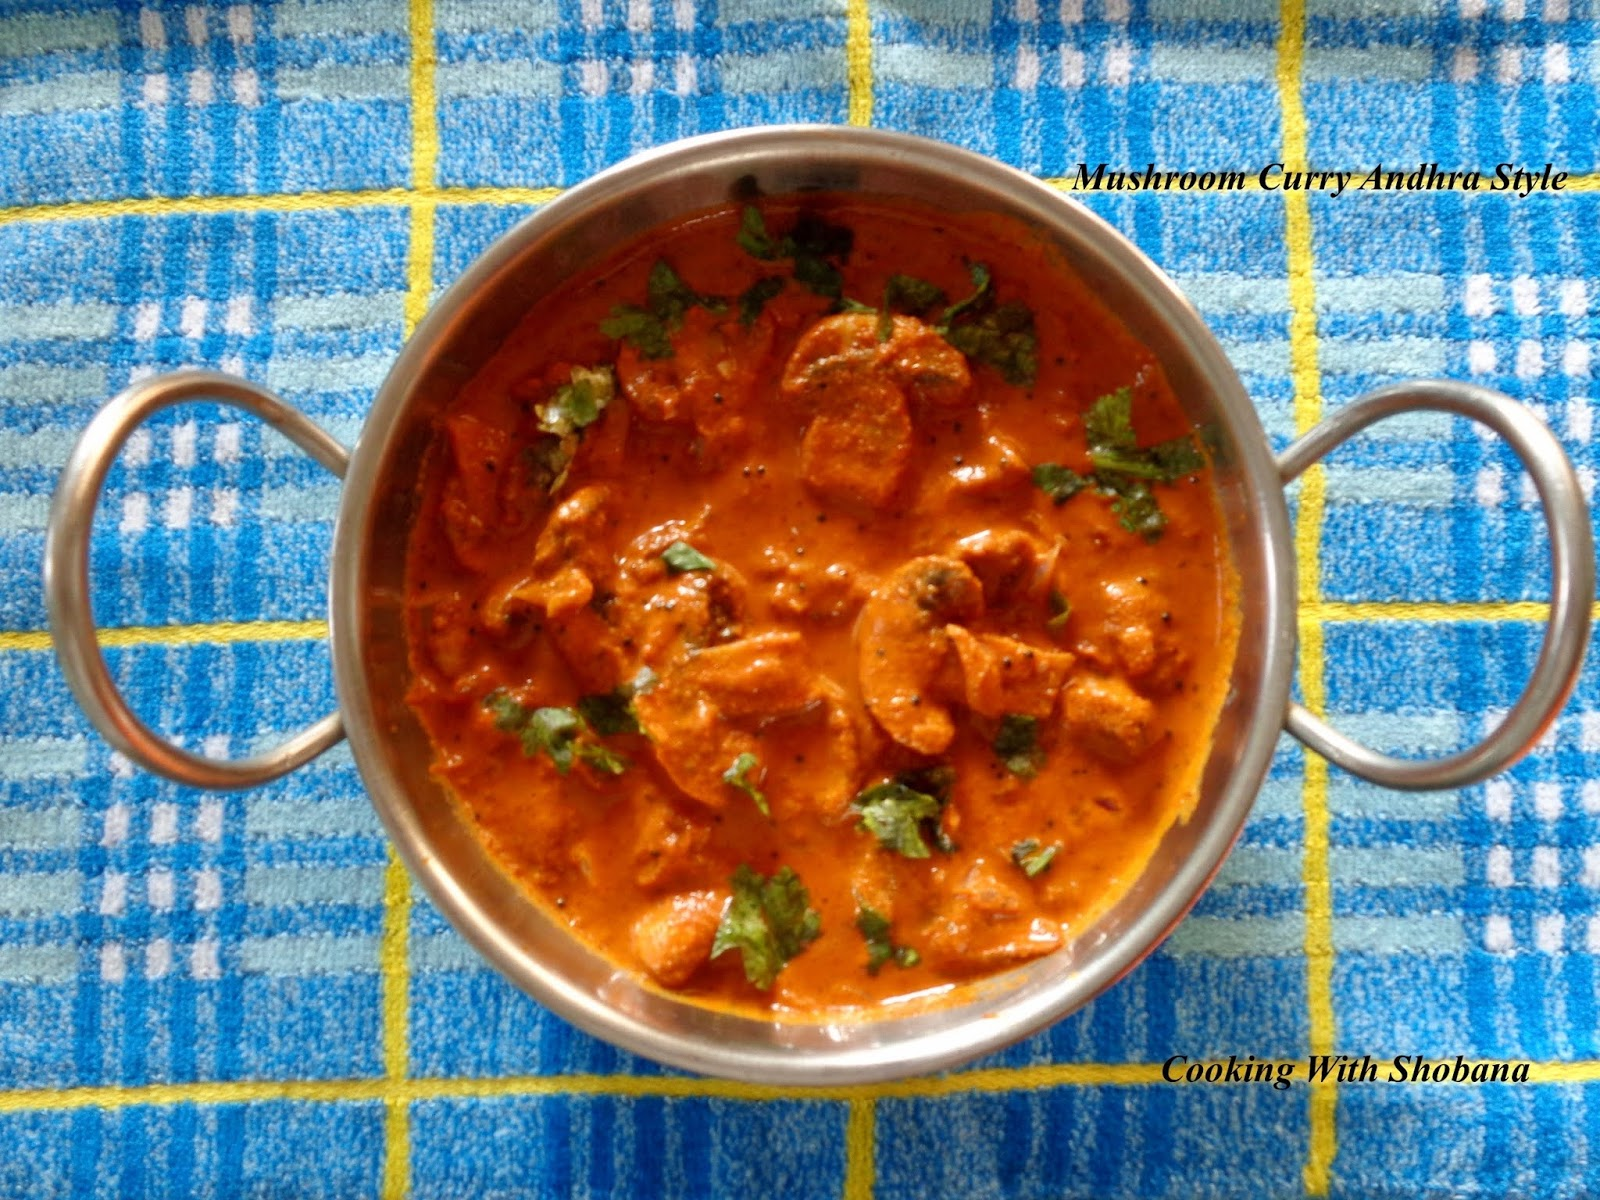 Cooking With Shobana : MUSHROOM CURRY ANDHRA STYLE